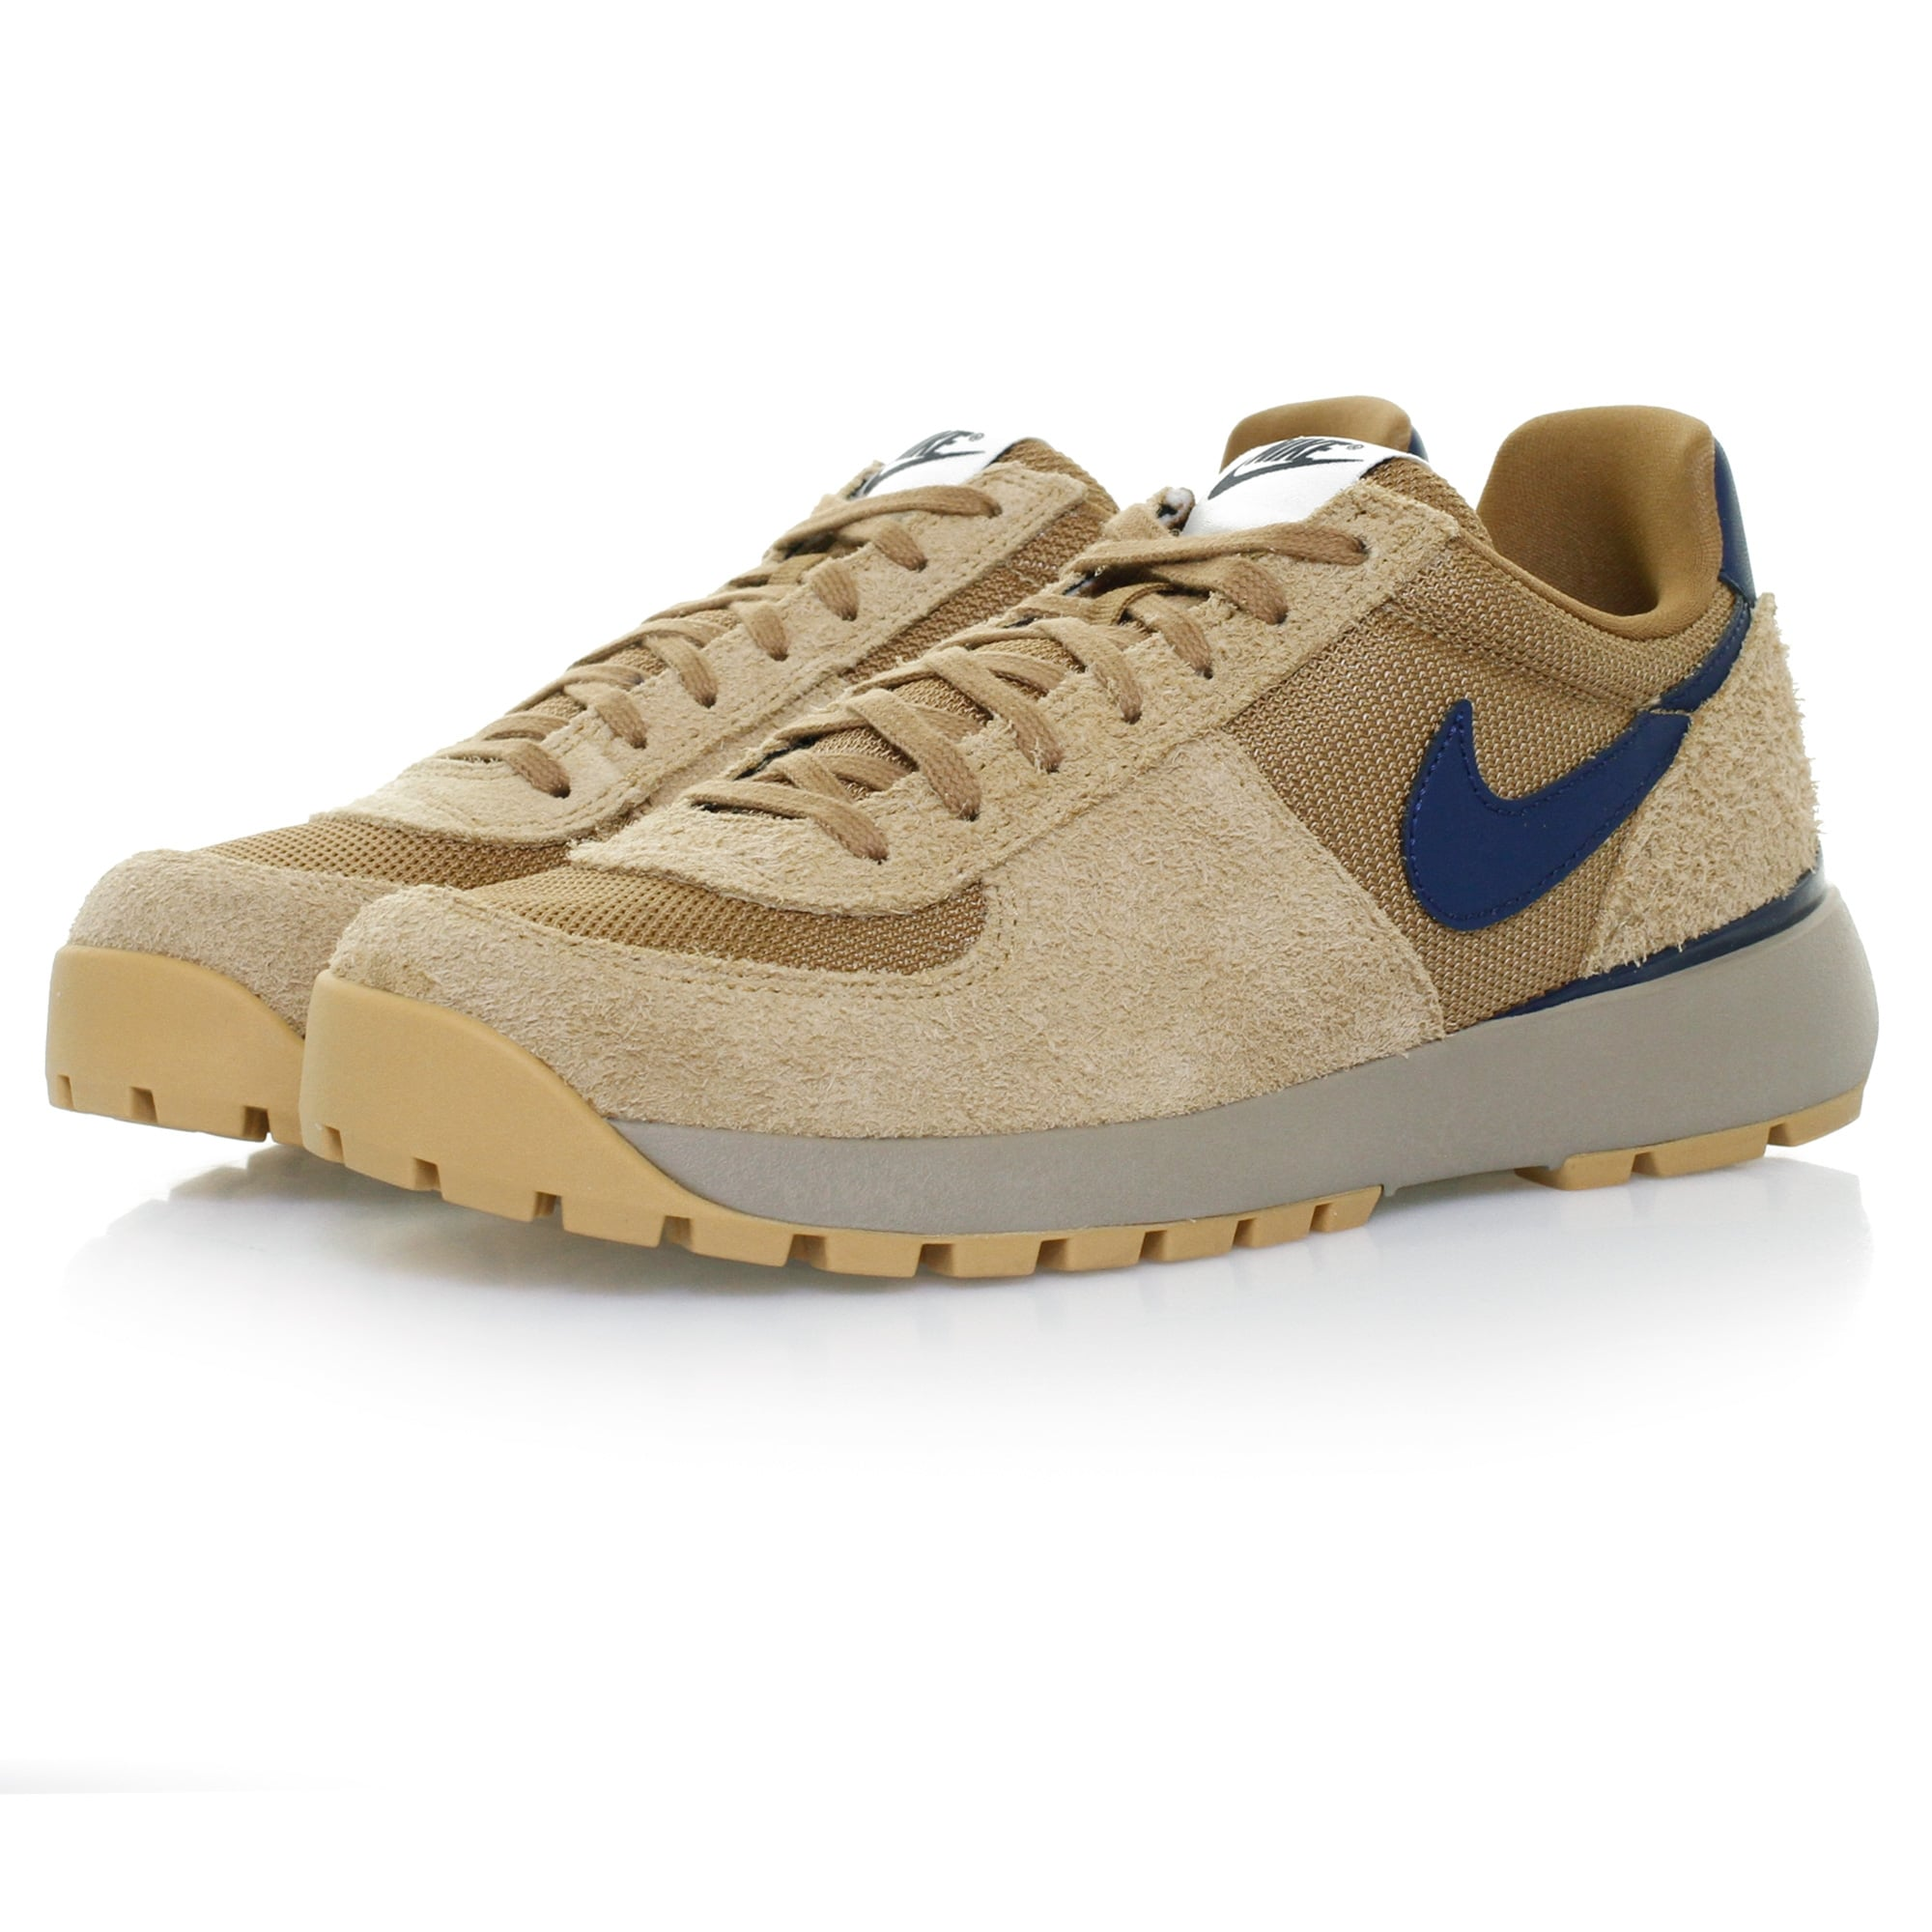 nike-lavadome-ultra-gold-mid-navy-shoe-844574-700-p24764-94089_zoom